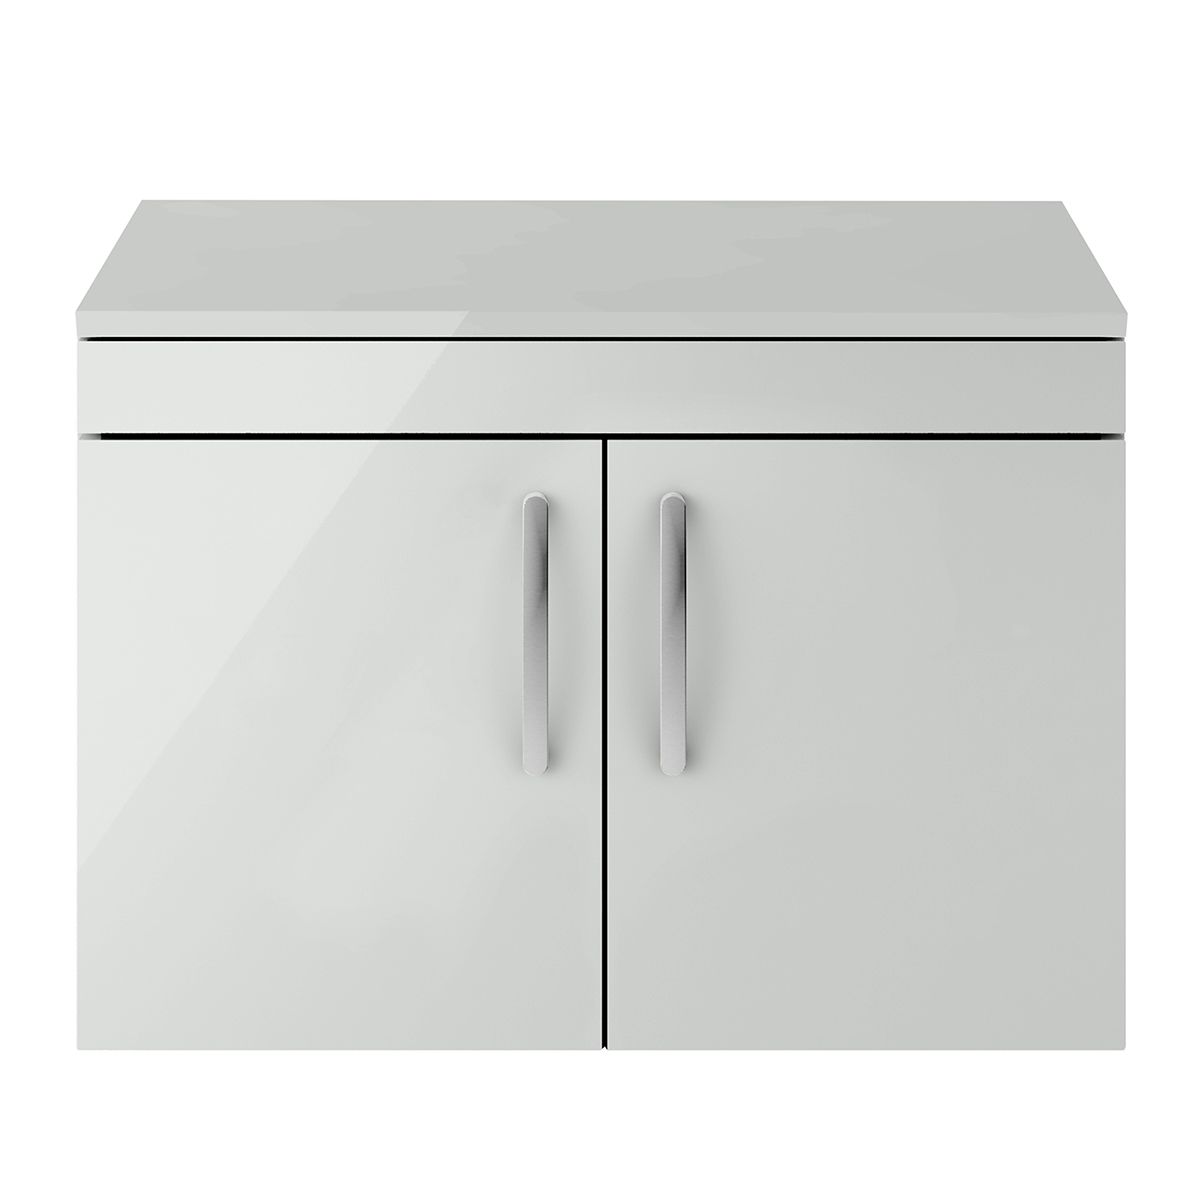 Nuie Athena Gloss Grey Mist 2 Door Wall Hung Unit 800mm with Worktop